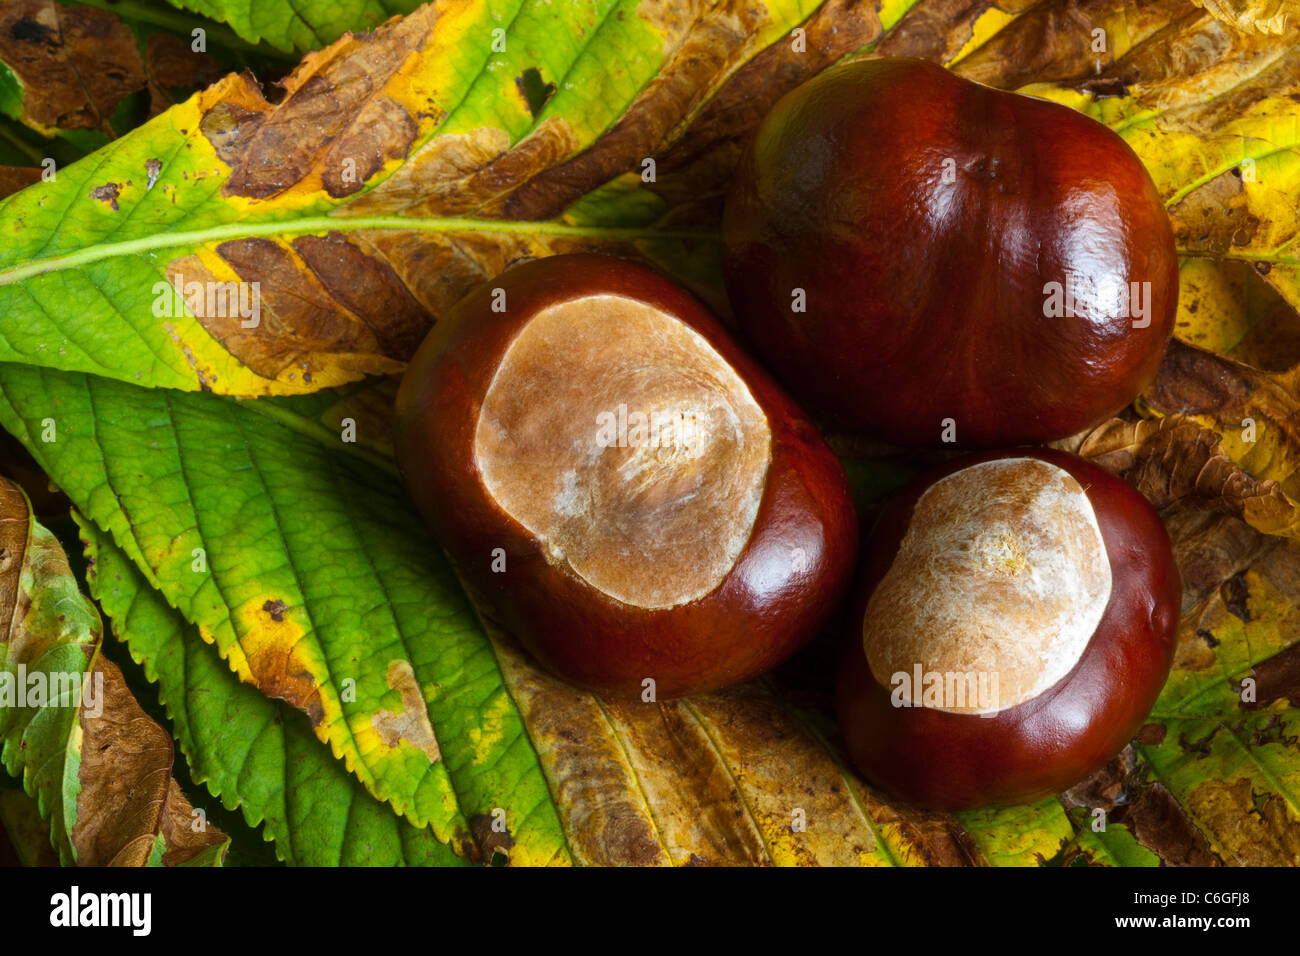 Three conkers lying on horse chestnut leaves in autumn - Stock Image